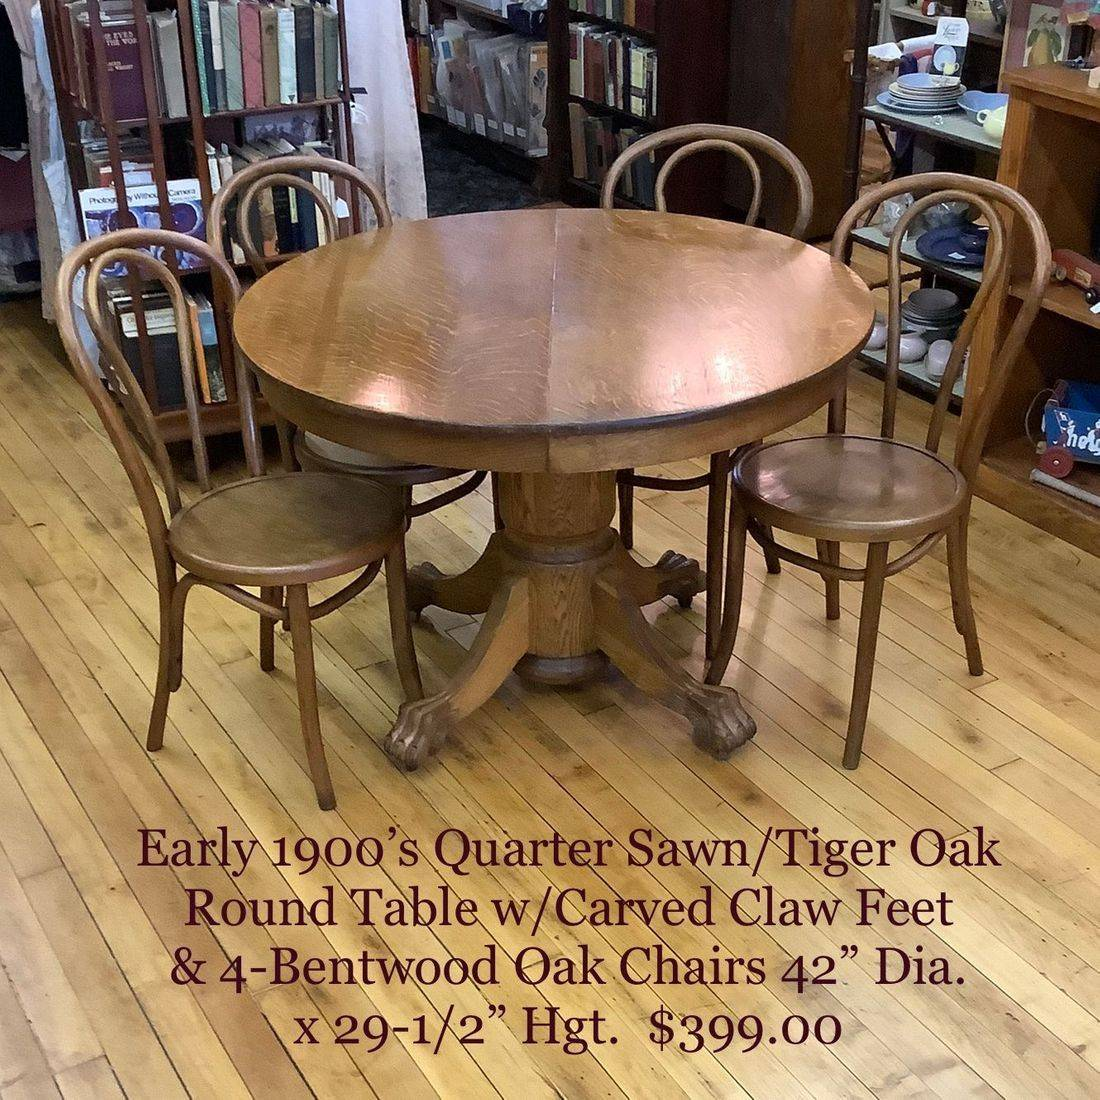 Early 1900's Quarter Sawn/Tiger Oak Round Table w/Carved Claw Feet & 4-Bentwood Oak Chairs   $399.00